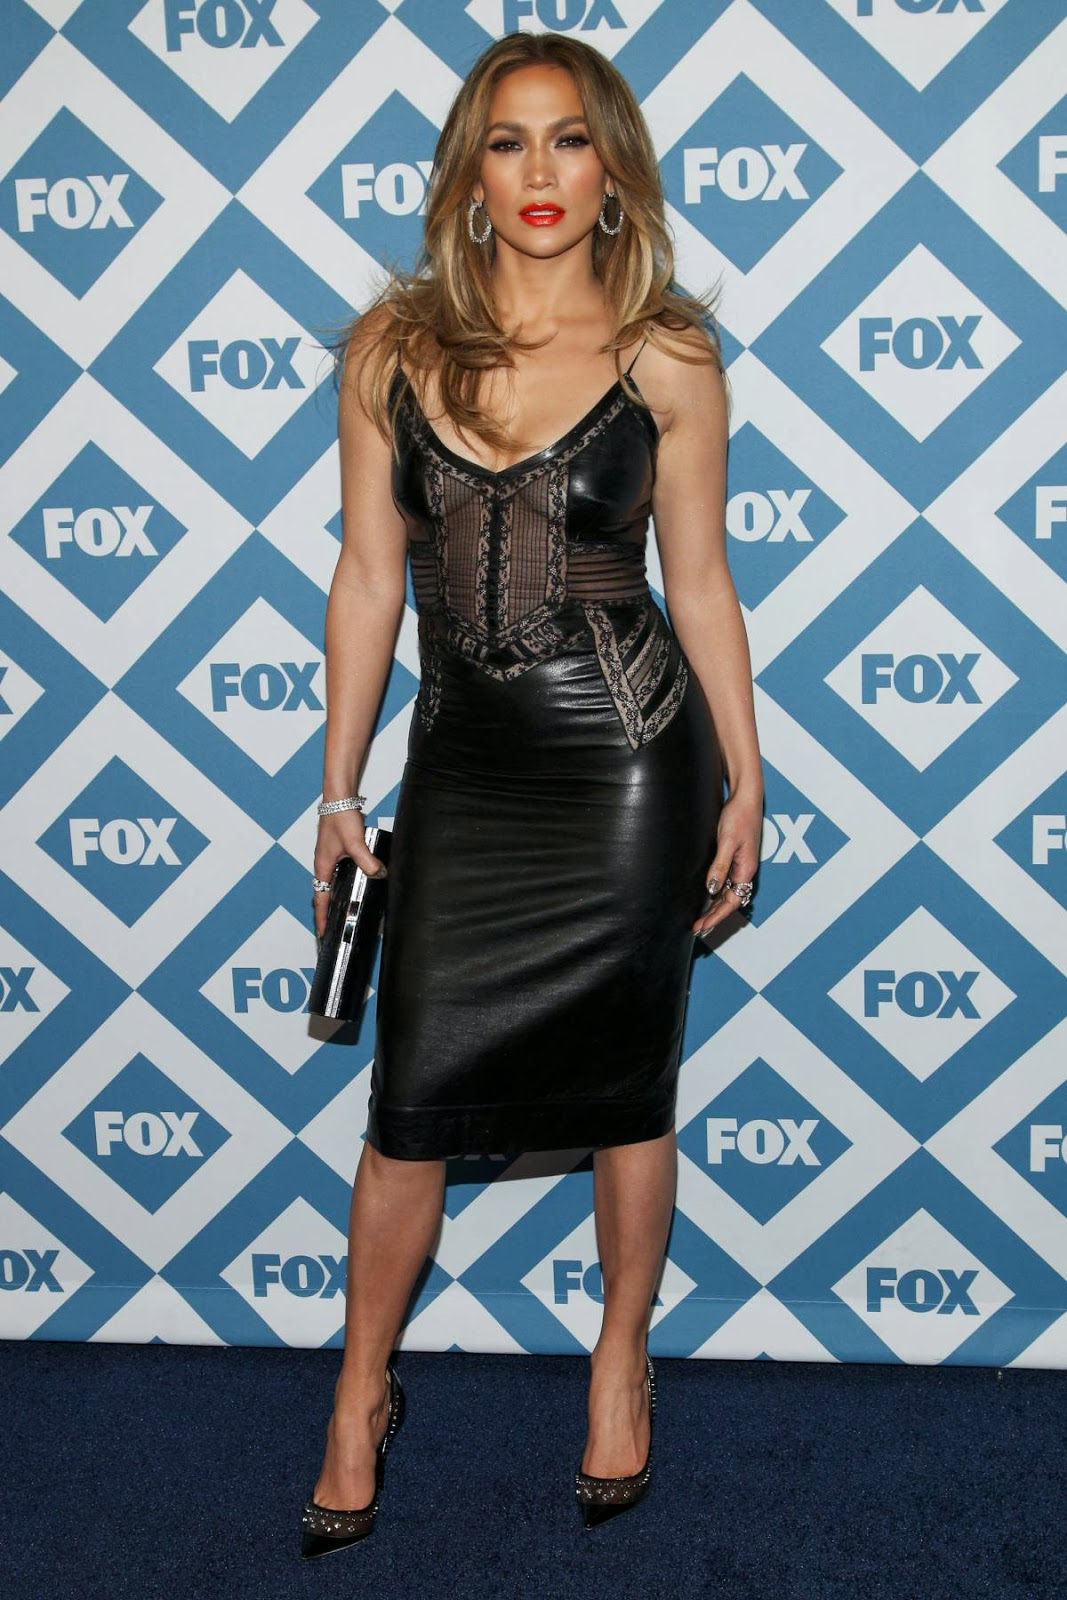 Jennifer Lopez in Sexy Leather Dress for Fox TCA Party – Red Carpet